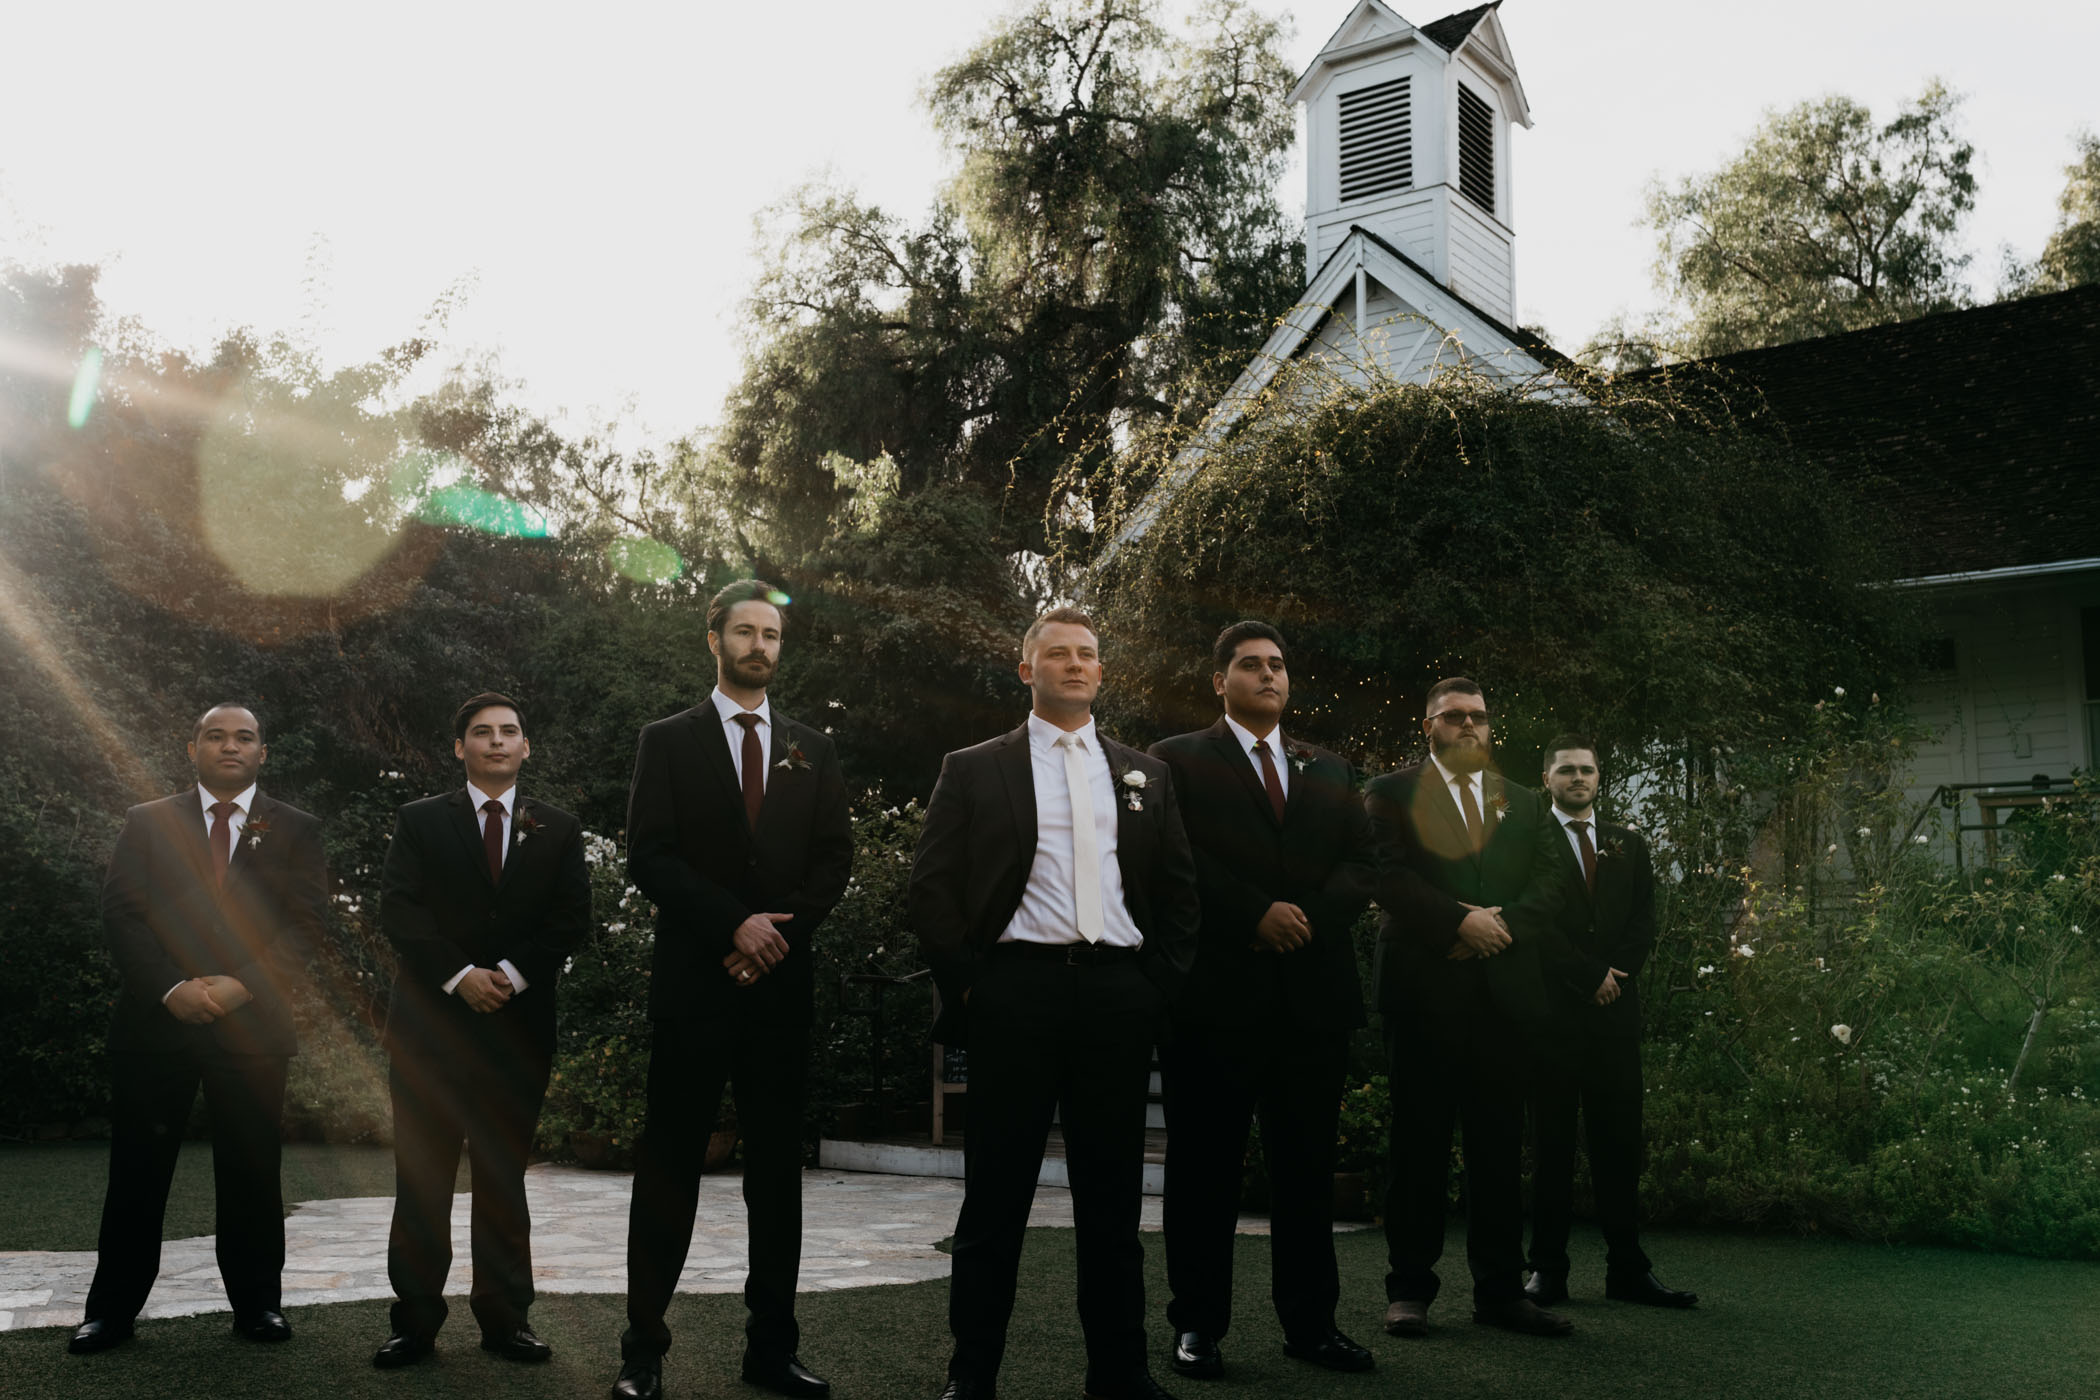 Groomsmen wedding photo before ceremony begins